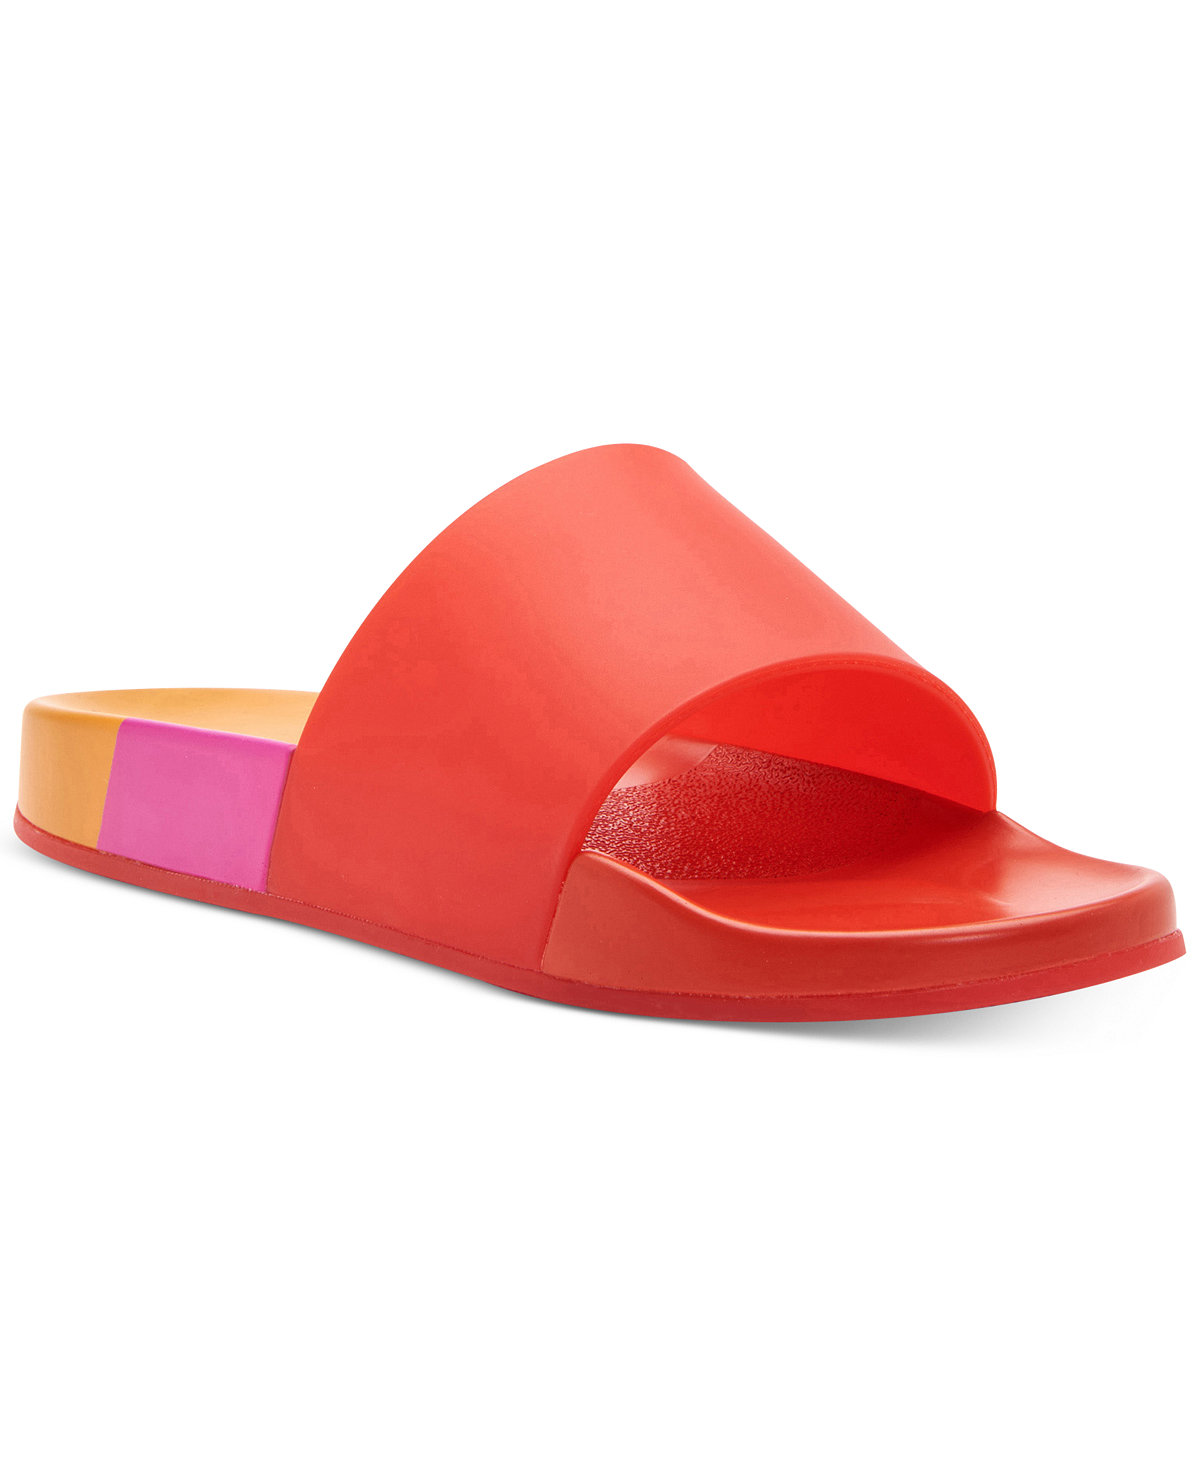 ed546bbf7 Katy Perry Fifi Pool Slide Sandals at Macy s (now reduced to  41.30)